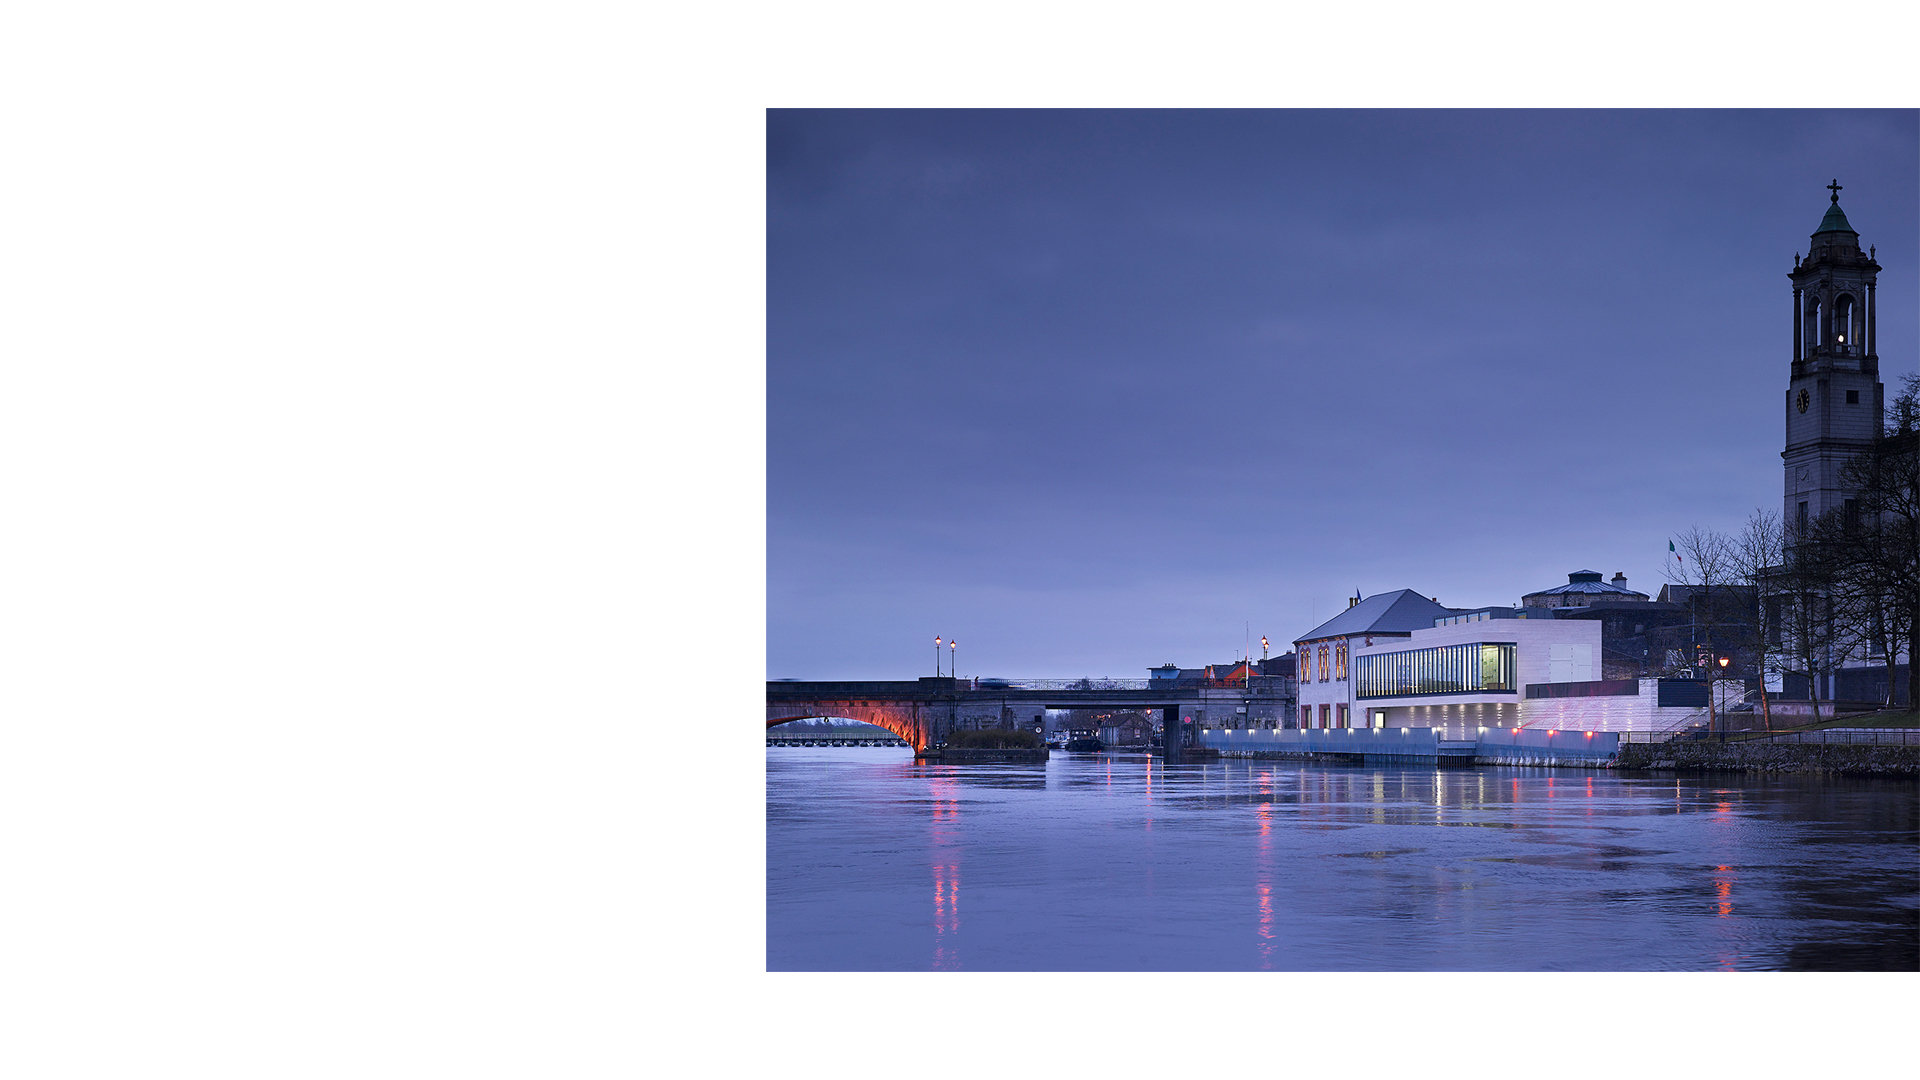 The Luan Gallery viewed upstream at dusk across the River Shannon. The tower of the church of St Peter and St Paul is silhouetted in the background